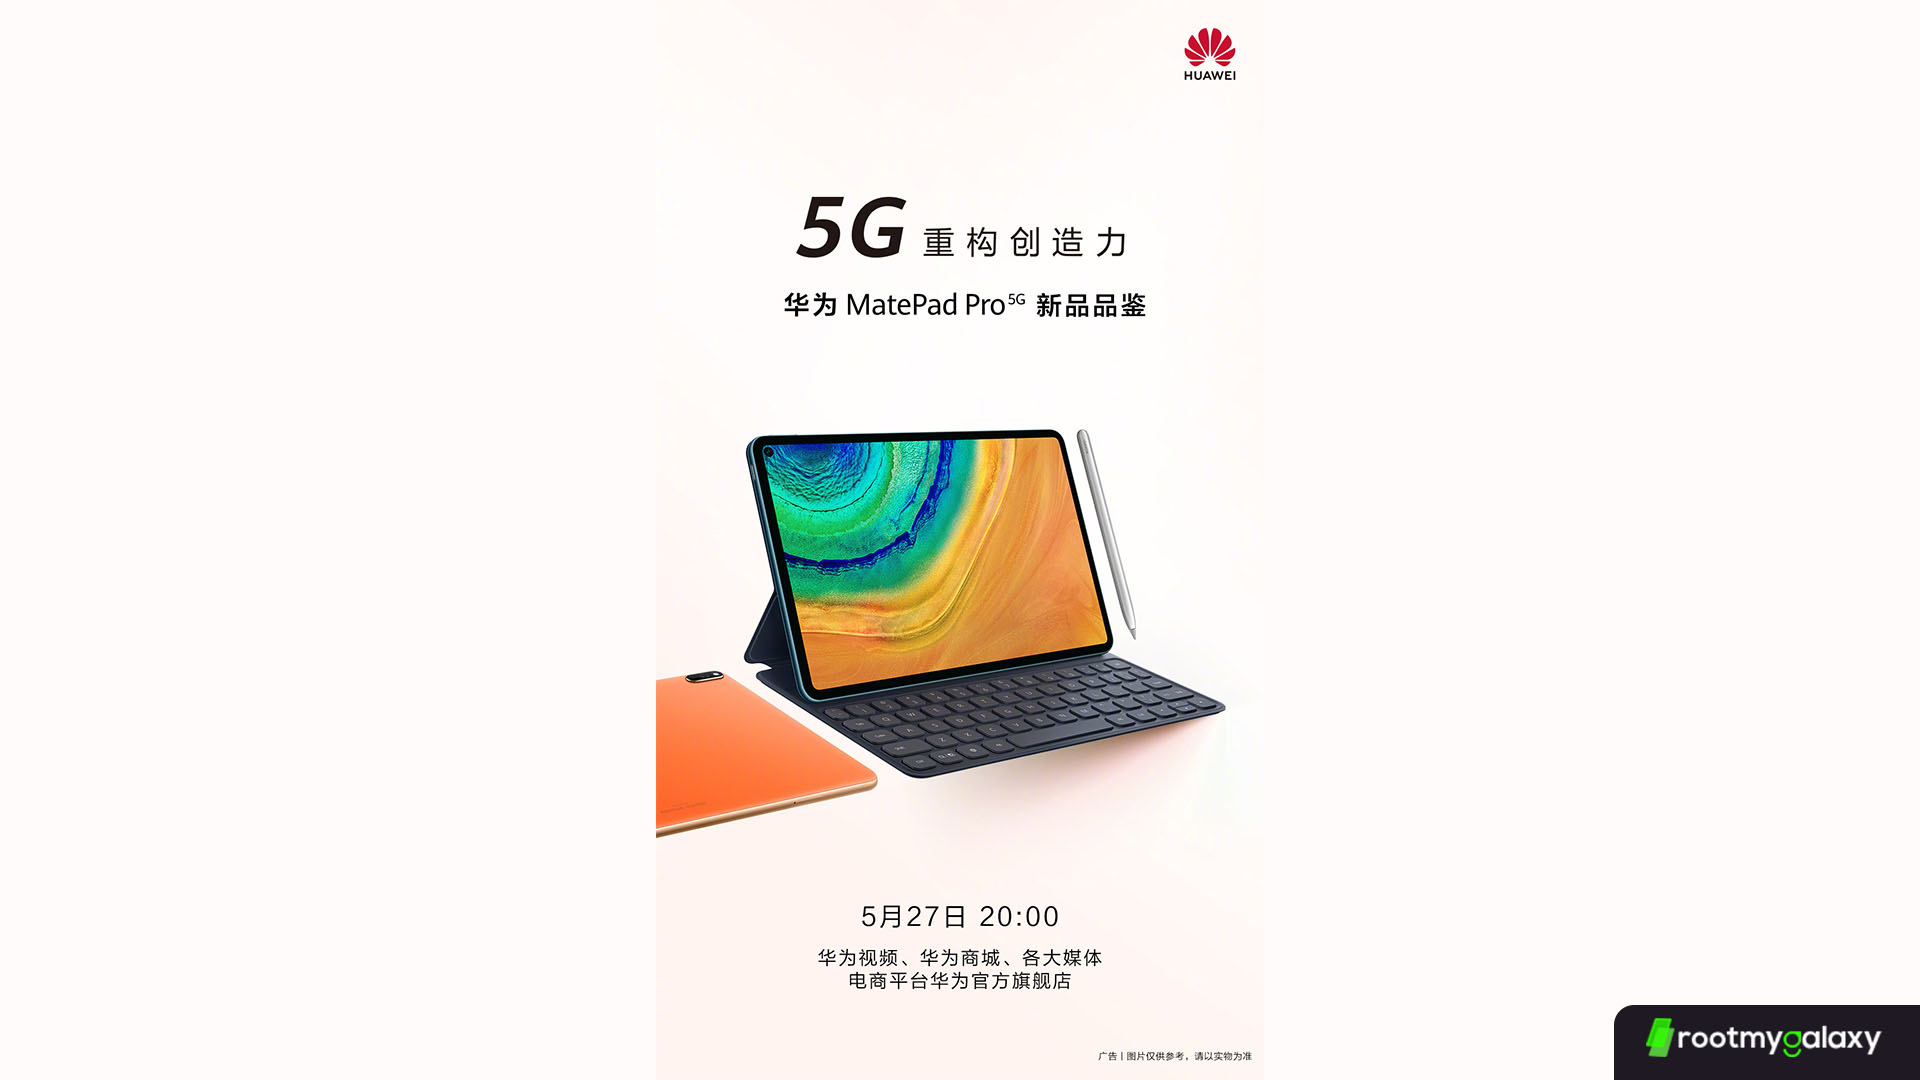 Huawei MatePad Pro 5G will be officially released on May 27 in China